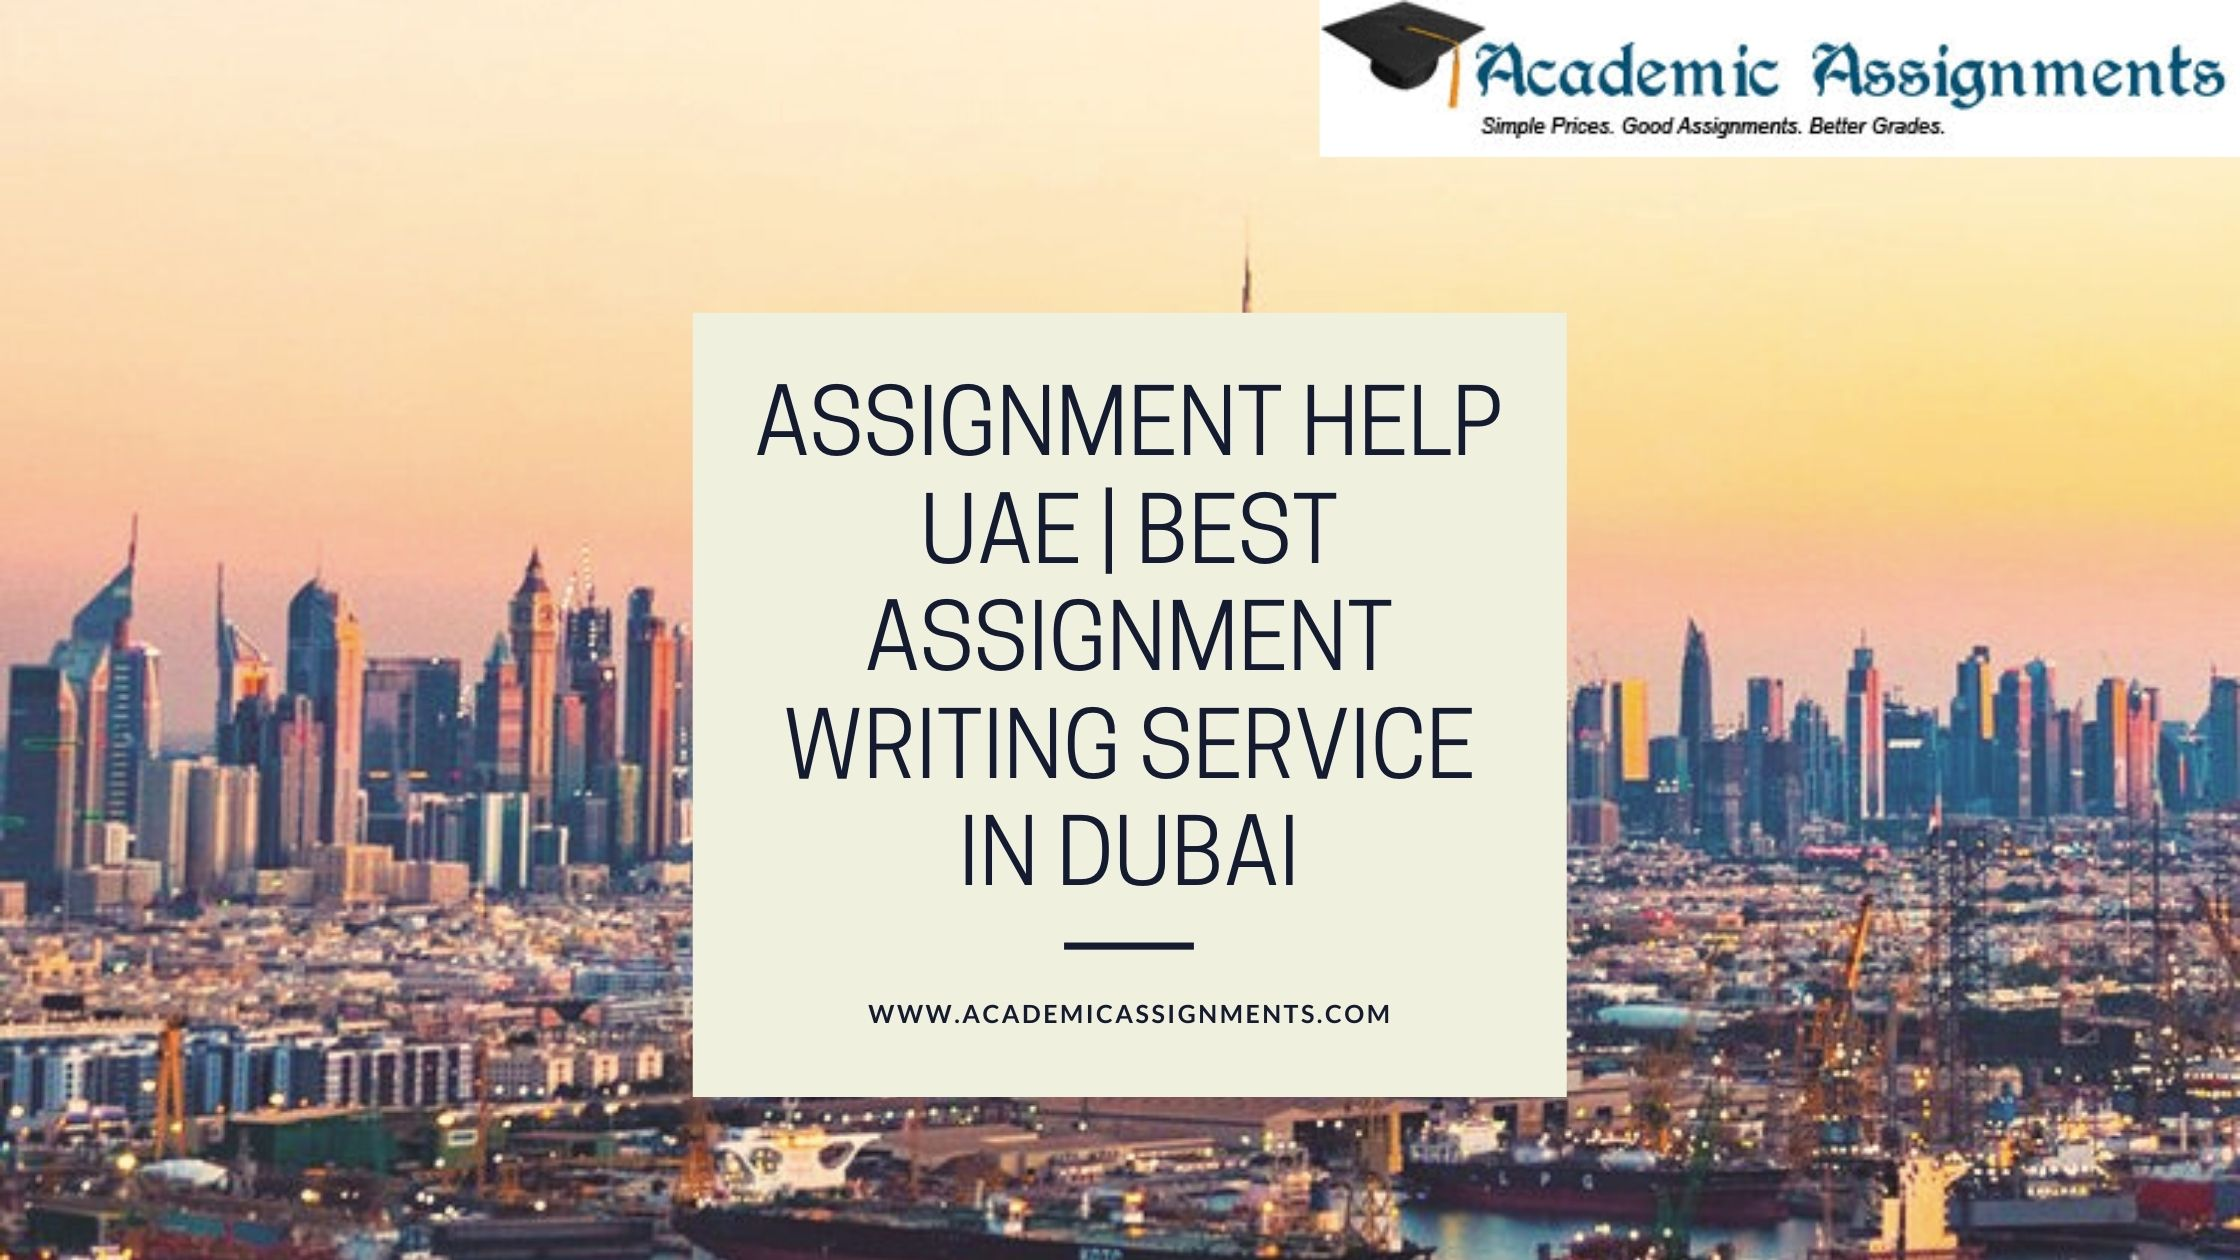 Assignment Help UAE | Best Assignment Writing Service in Dubai